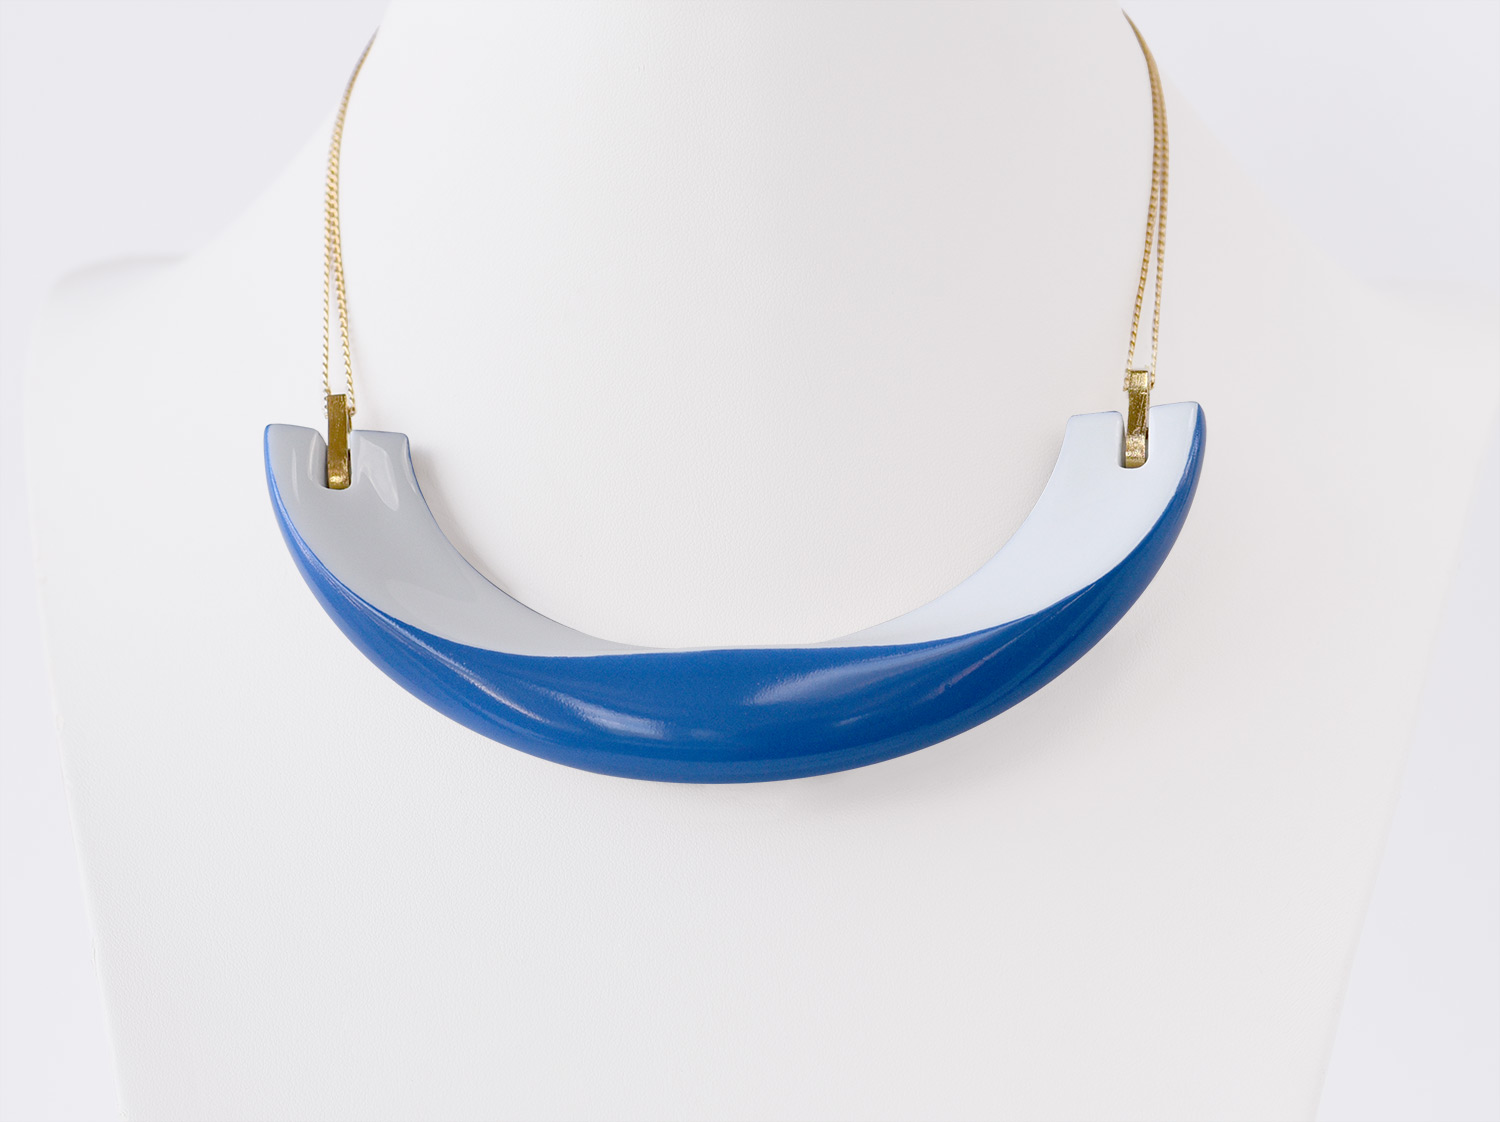 Collier Alba bleu en porcelaine de la collection ALBA BLEU Bernardaud